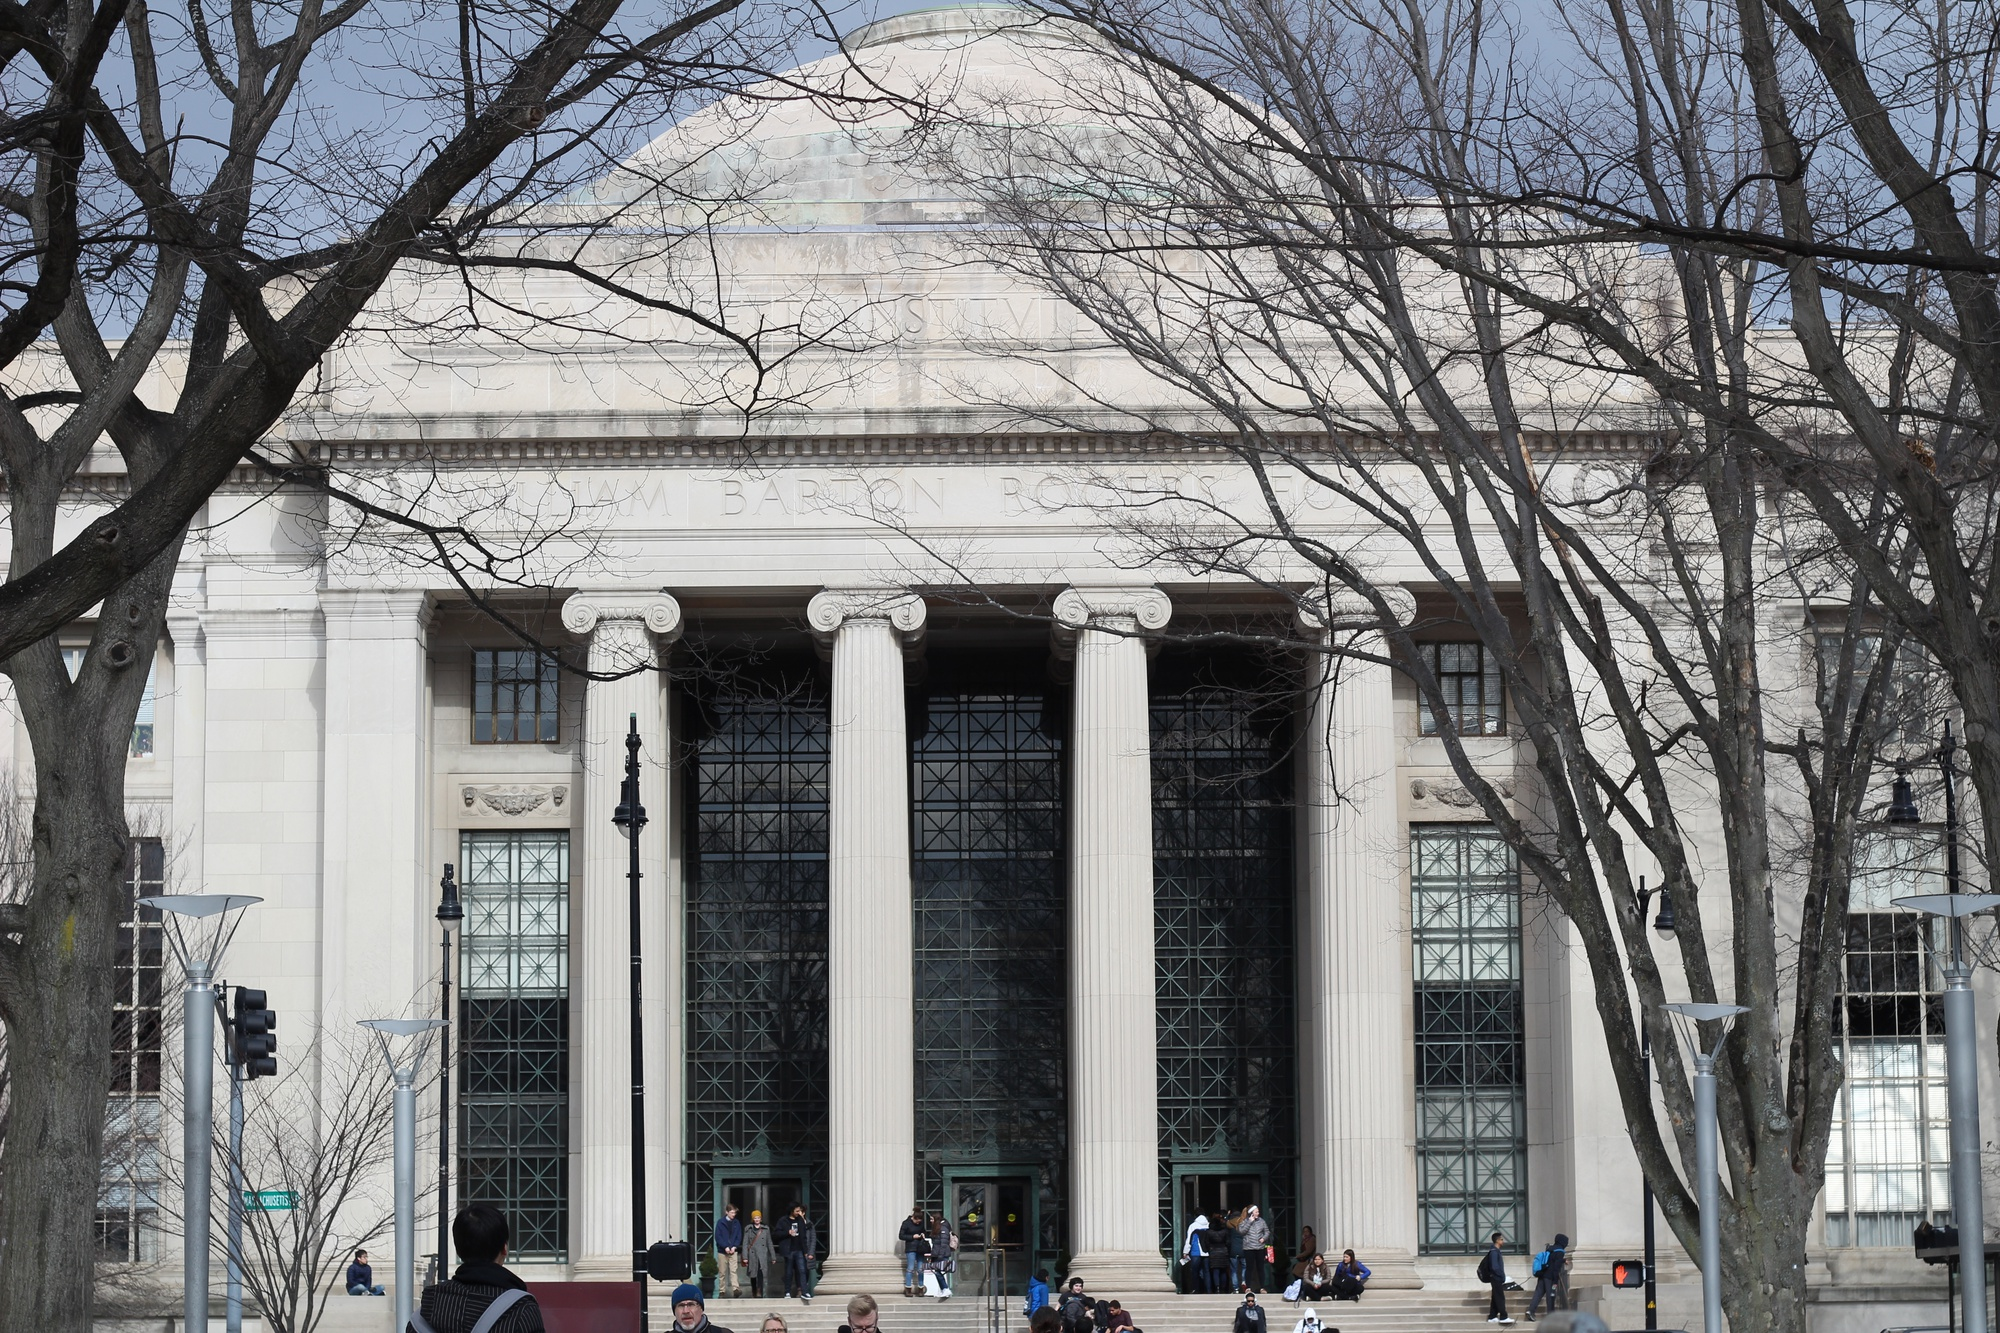 The MIT Bitcoin Club hosted their Bitcoin Expo 2018 earlier in March.